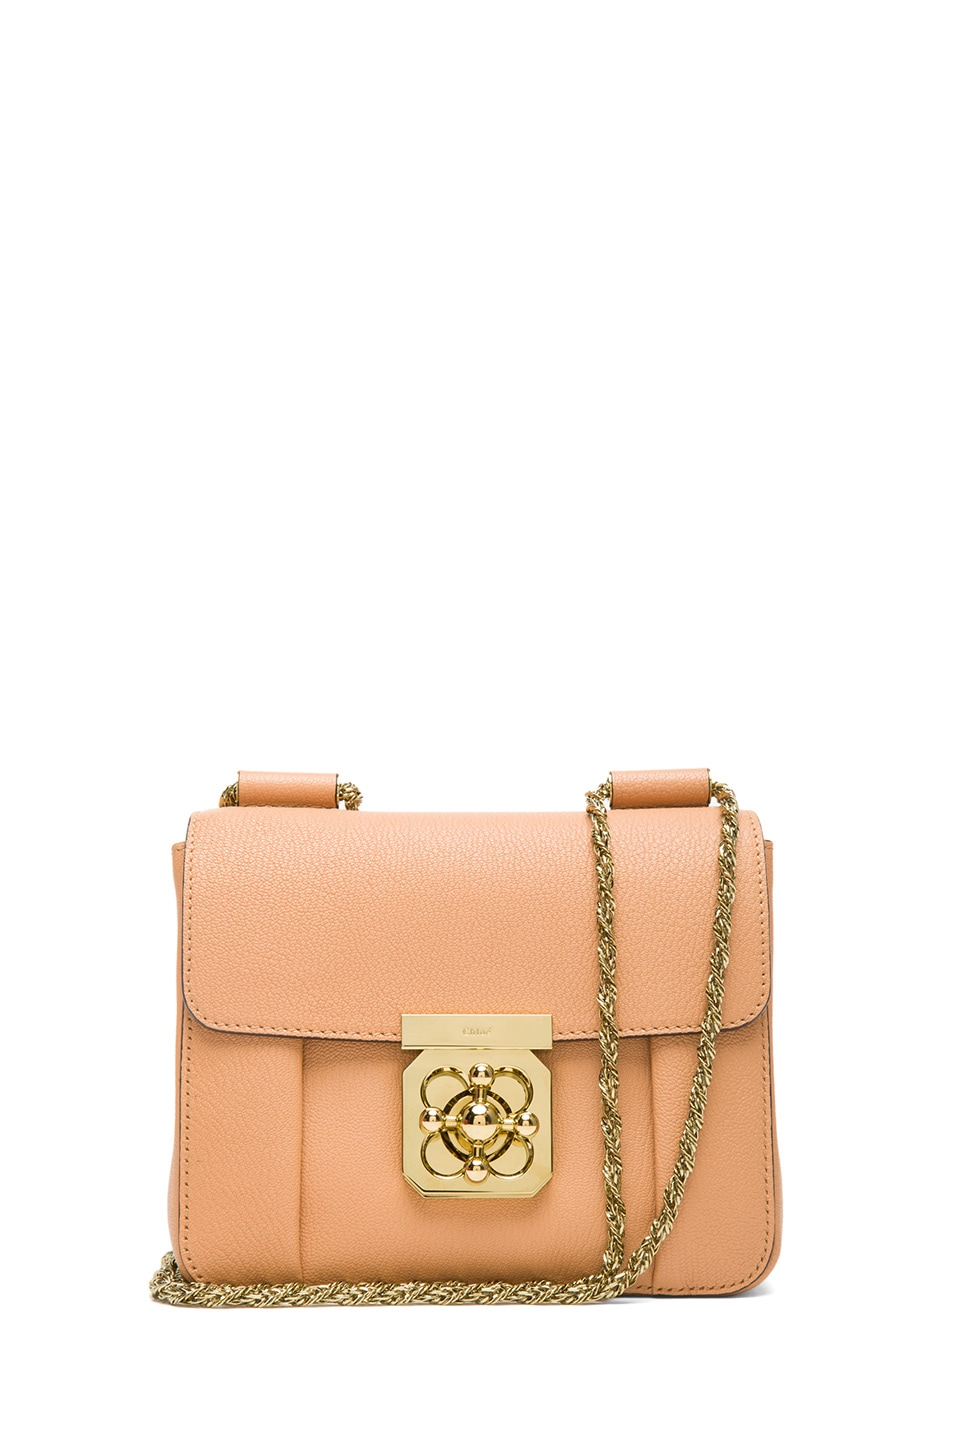 Image 1 of Chloe Small Elsie Shoulder Bag in Rose Milk